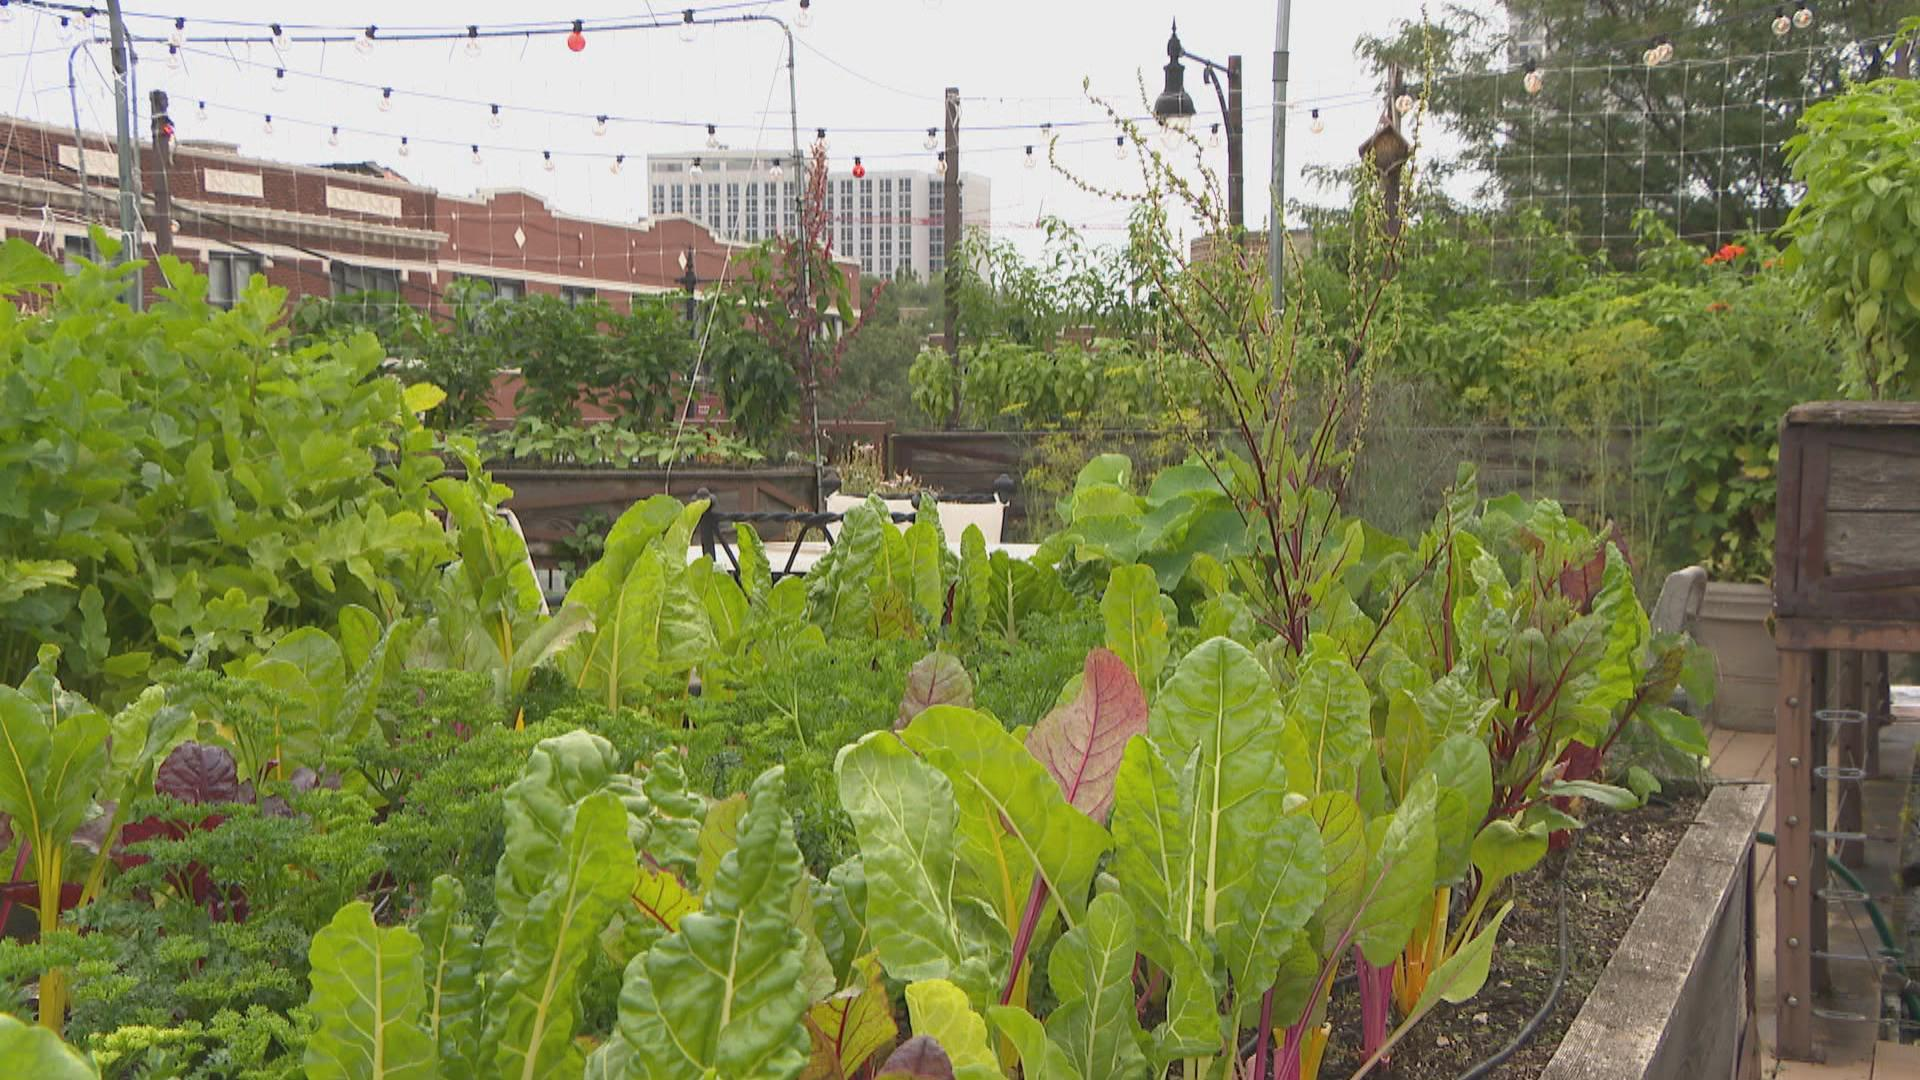 Organic Gardens In Chicago Provide Fresh Produce Opportunities